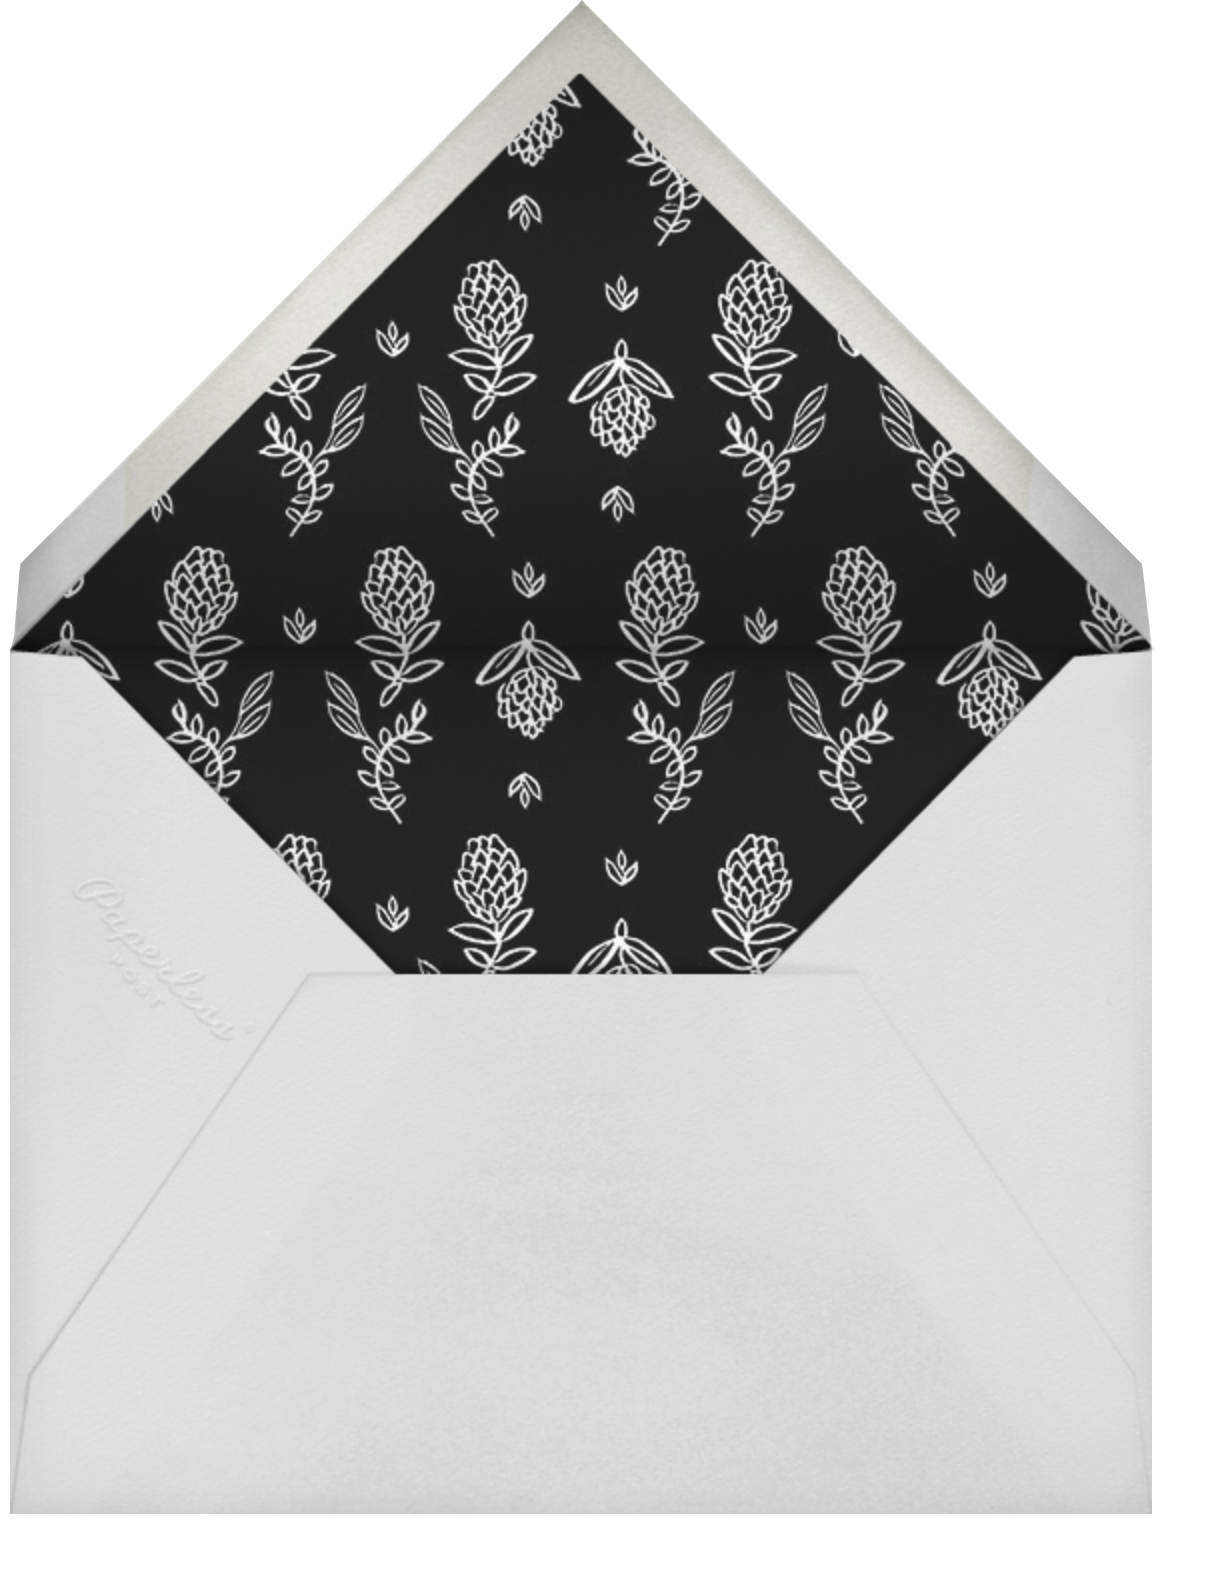 Botanical Lace (Photo) - Silver - Rifle Paper Co. - All - envelope back